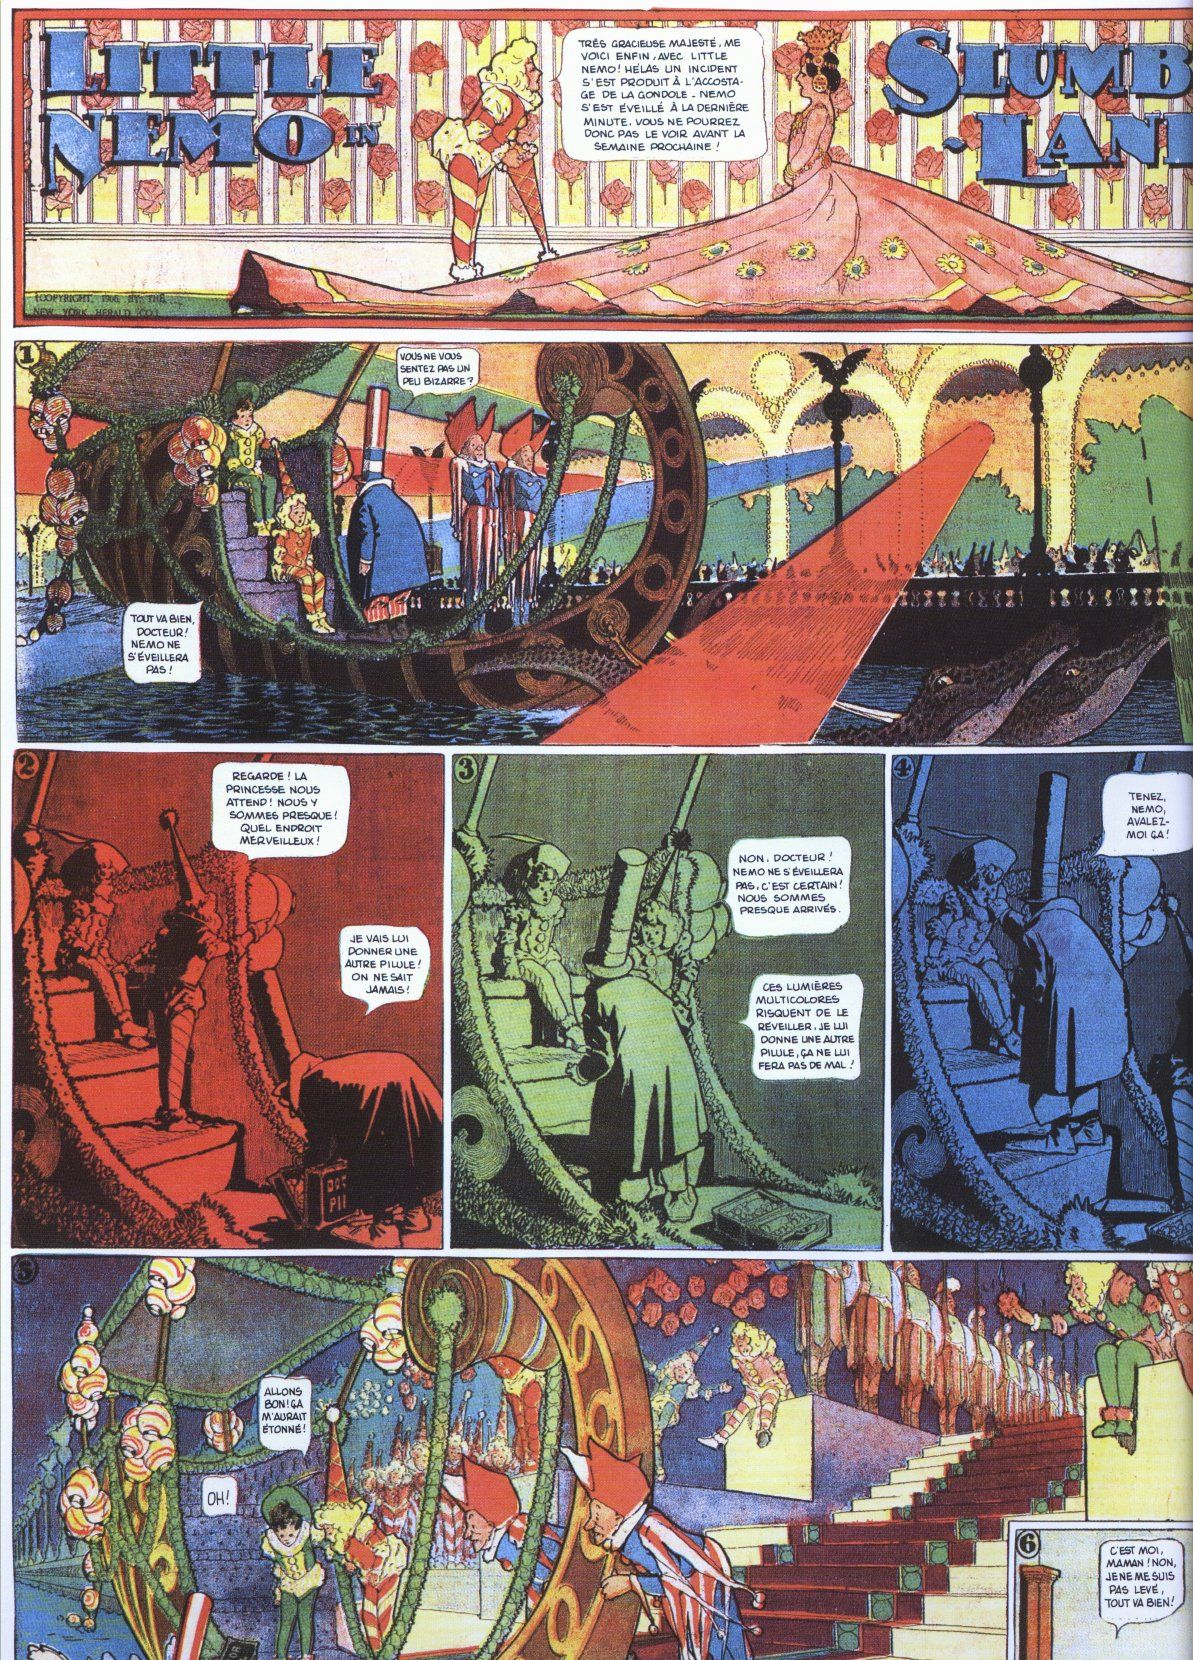 This Day in History: Oct 15, 1905: Little Nemo in Slumberland by Winsor McCay debuts dingeengoete.blogspot.com http://www.koikadit.net/WMacCay/nemo2.jpg